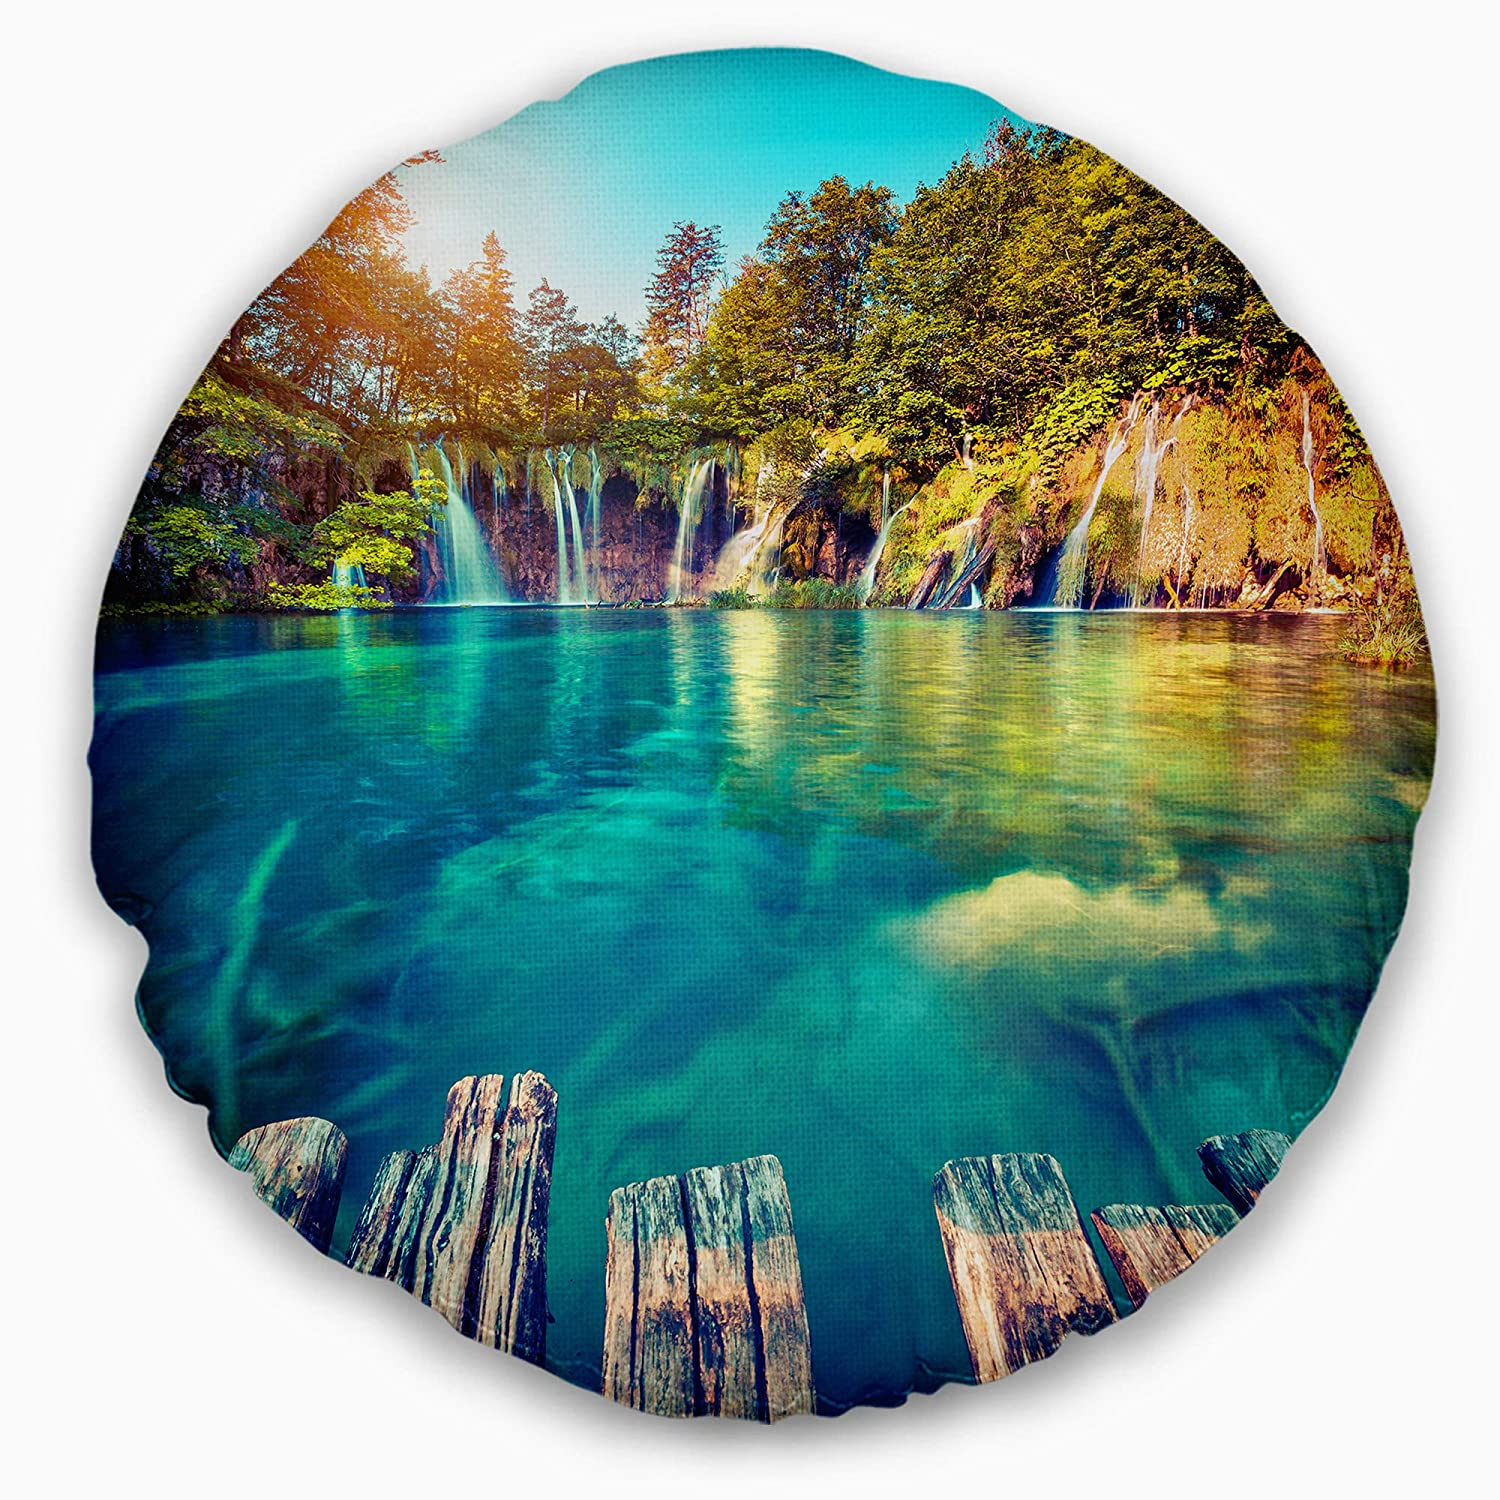 16 Designart Cu9090 16 16 C Blue Waters In Plitvice Lakes Landscape Photo Round Throw Pillow